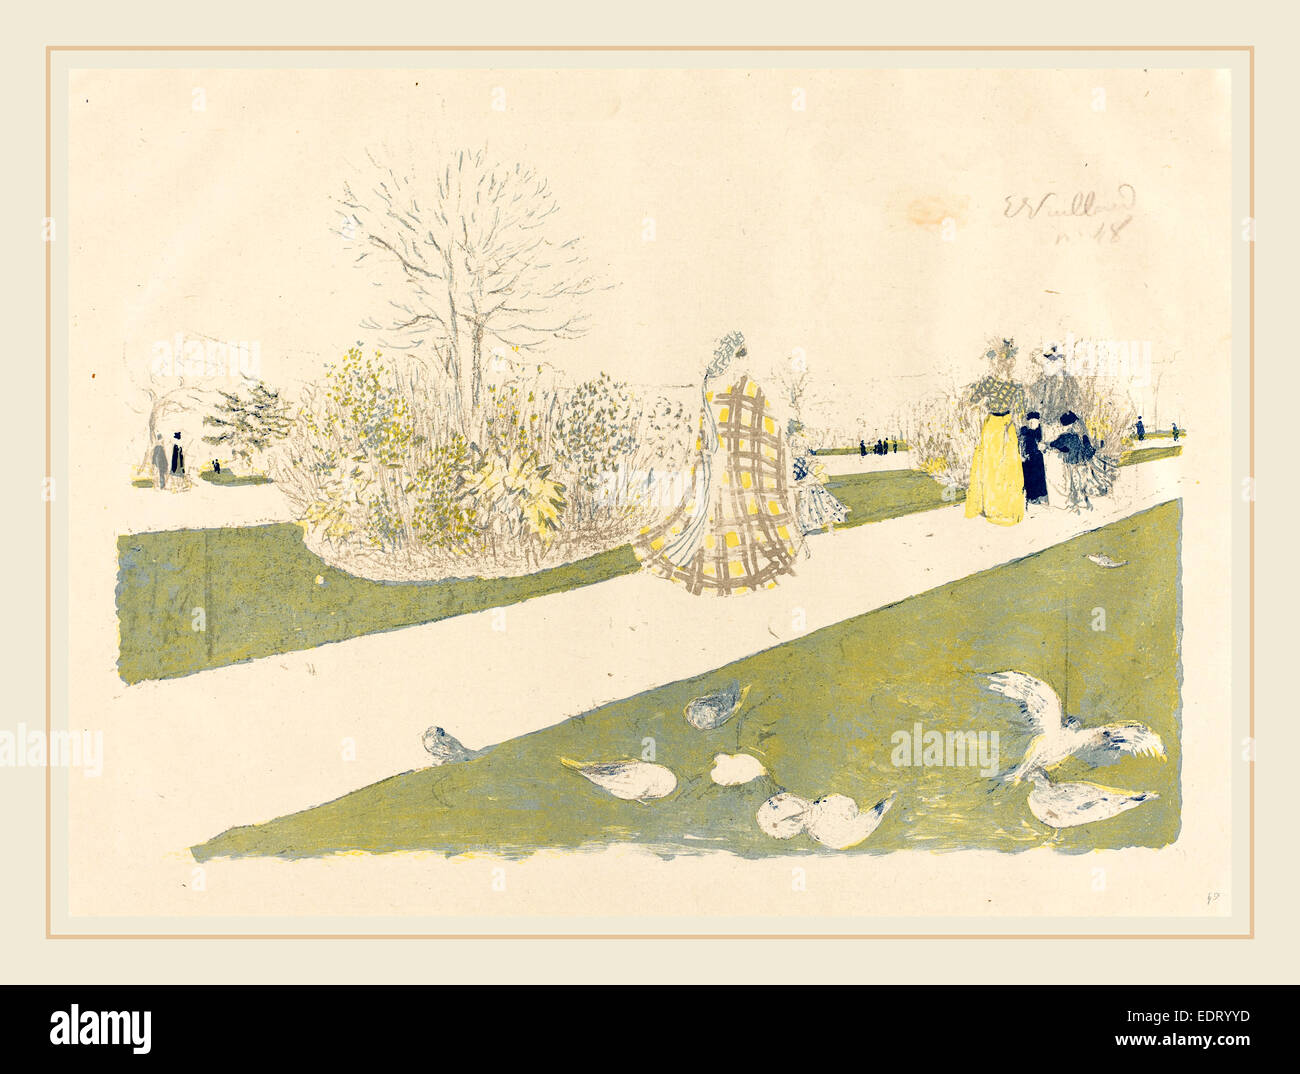 Edouard Vuillard (French, 1868-1940), The Tuileries Garden (Le jardin des Tuileries), published 1896, color lithograph - Stock Image